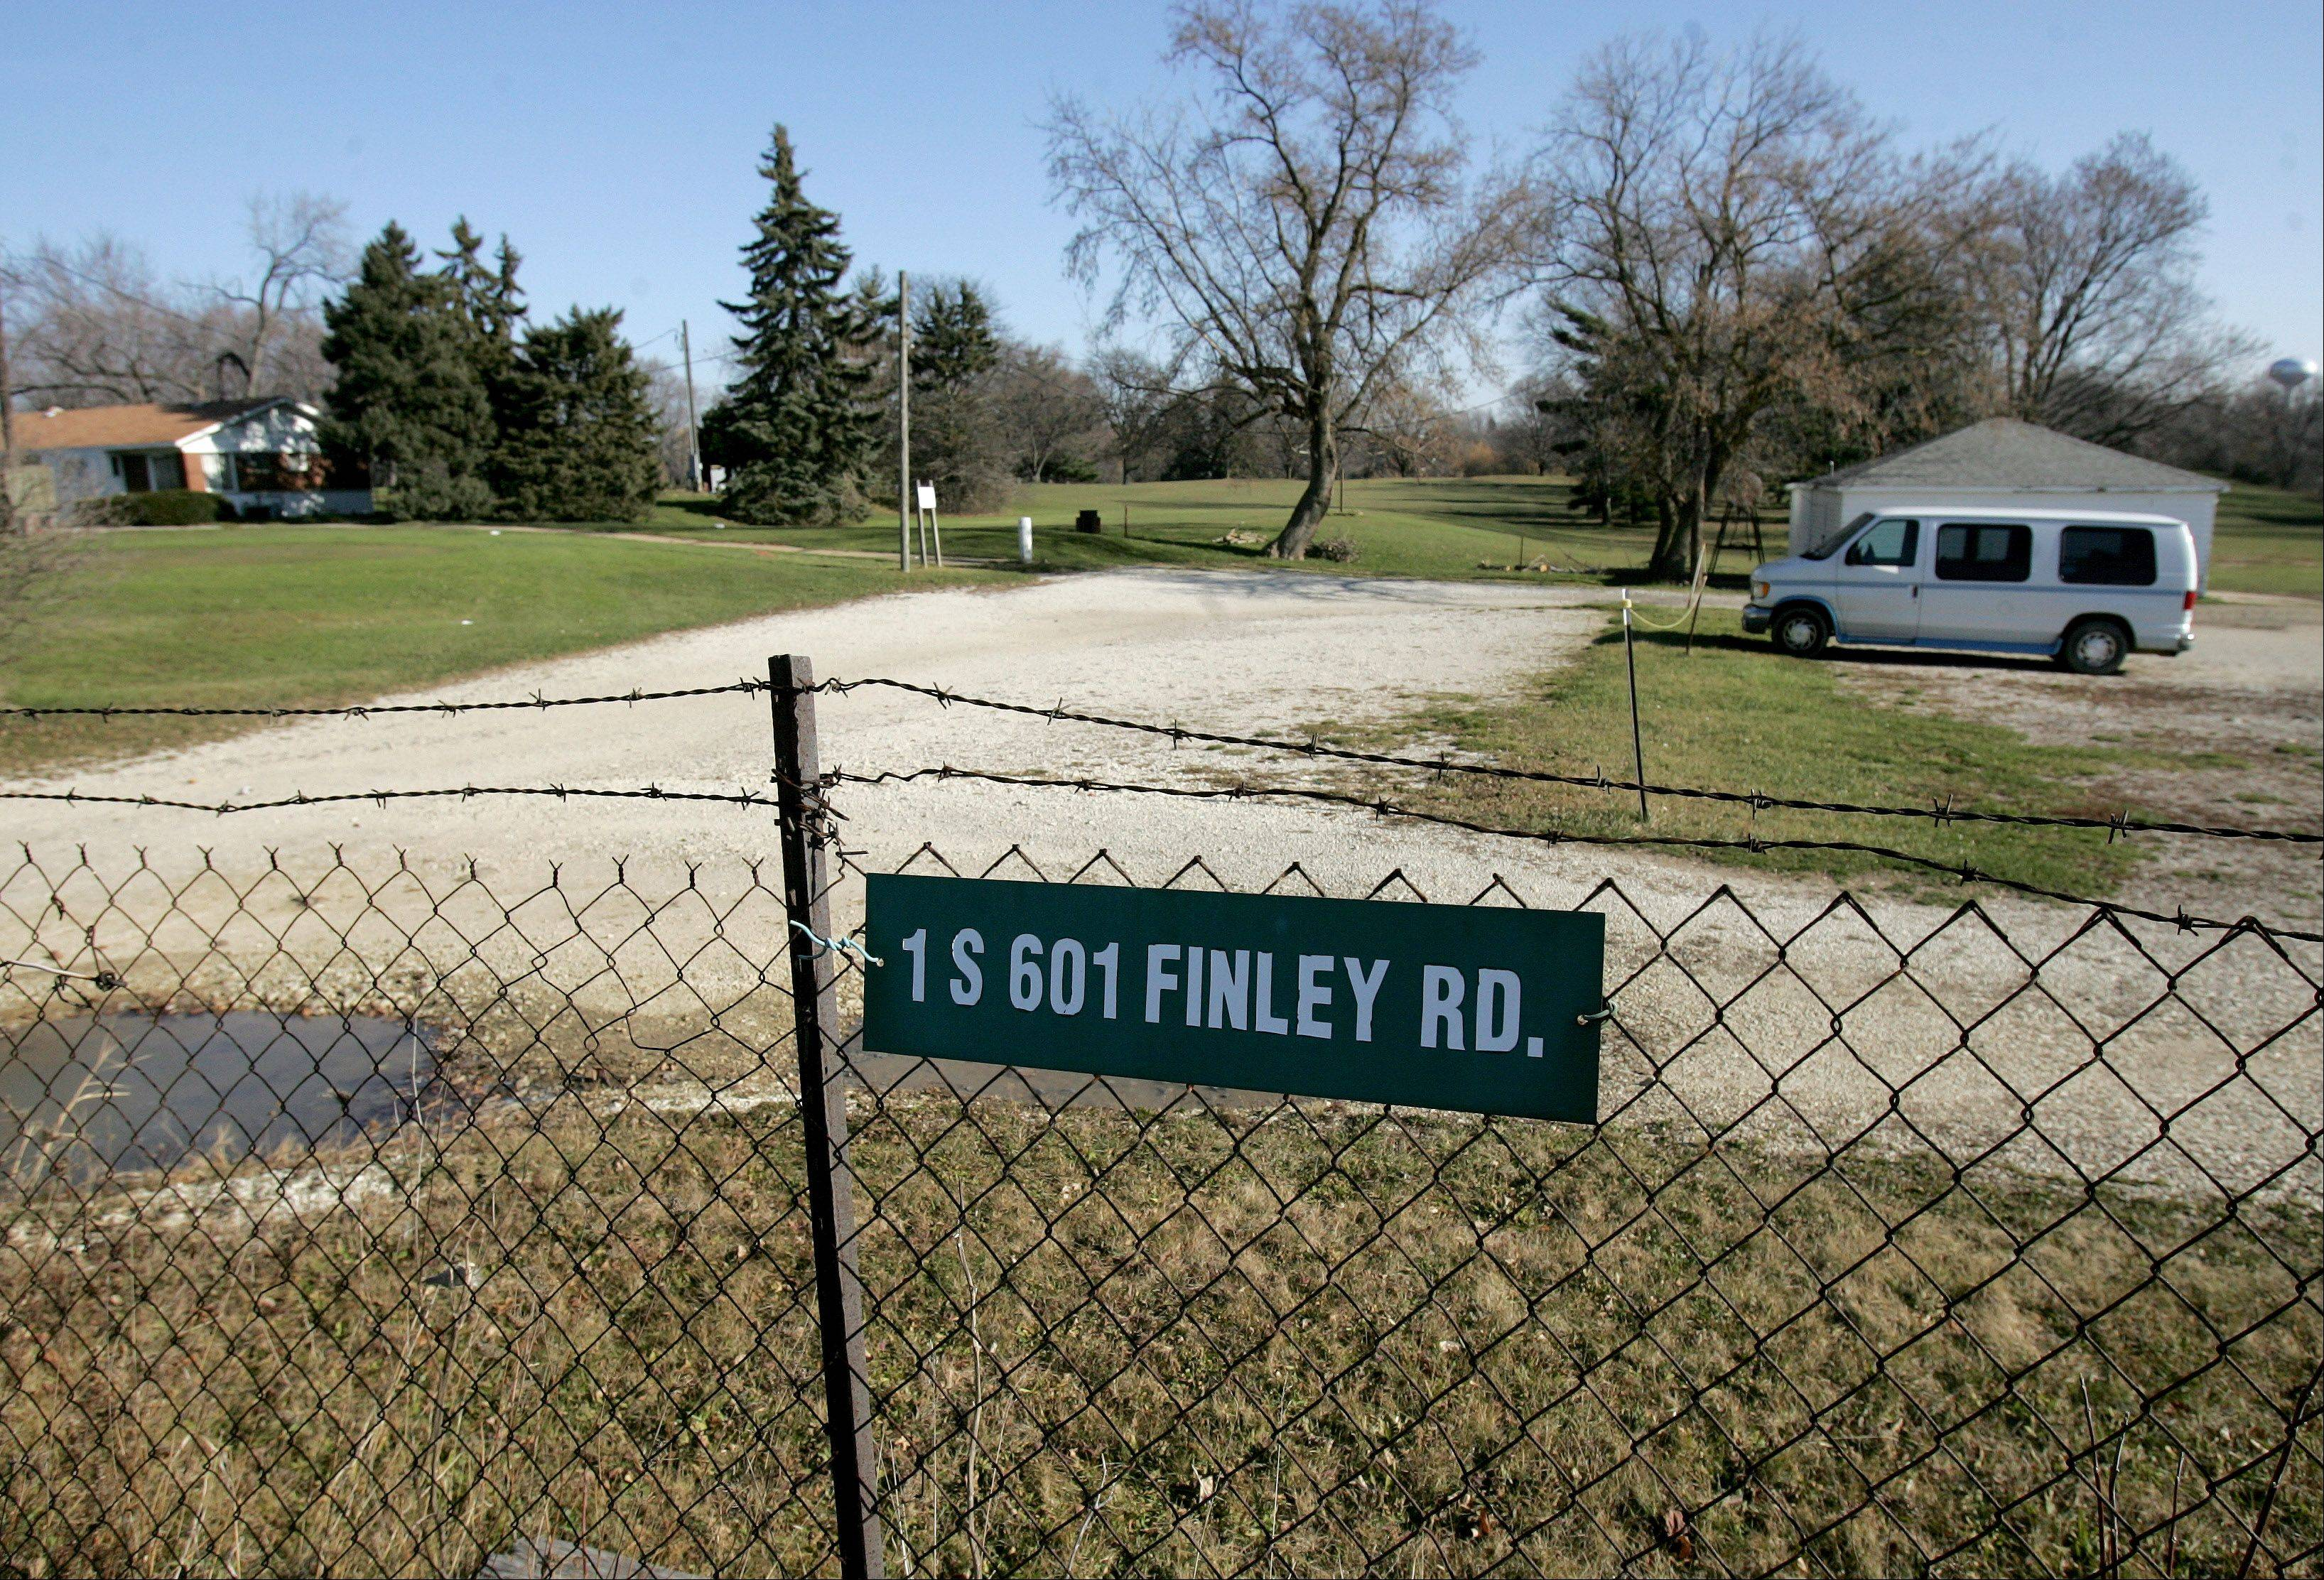 DuPage County Board members have approved a rezoning request that allows Donven Homes to build apartments and townhouses on the 31-acre Ken-Loch Golf Links site near Lombard.